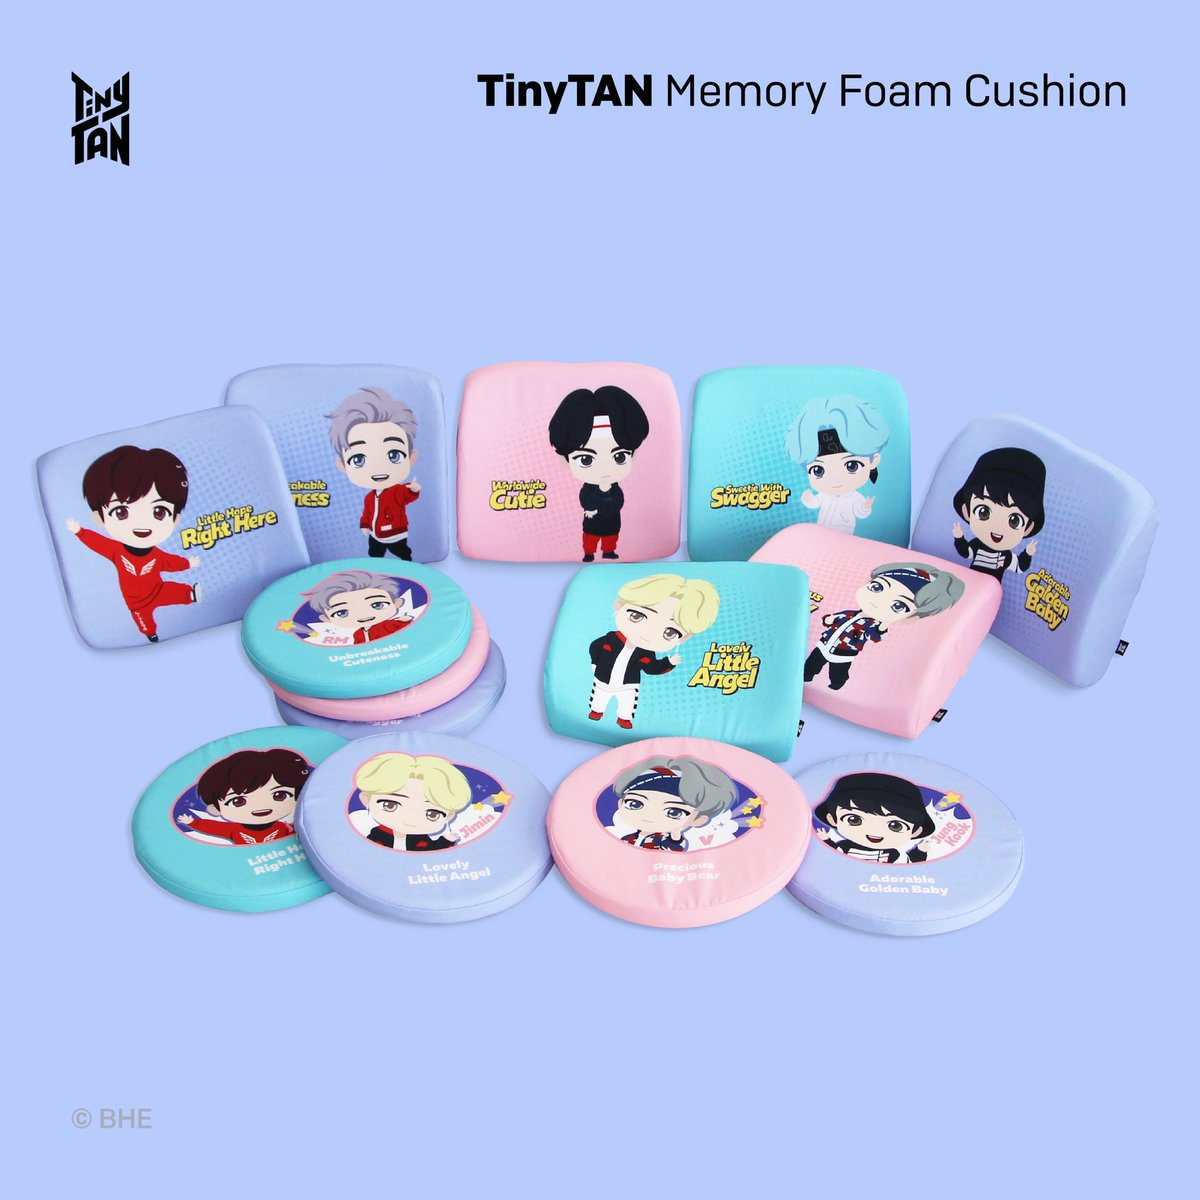 [February 2021] Newly Launched Licensed Products! TinyTAN @NARA_HOME_DECO Memory Foam Cushions available in Korea